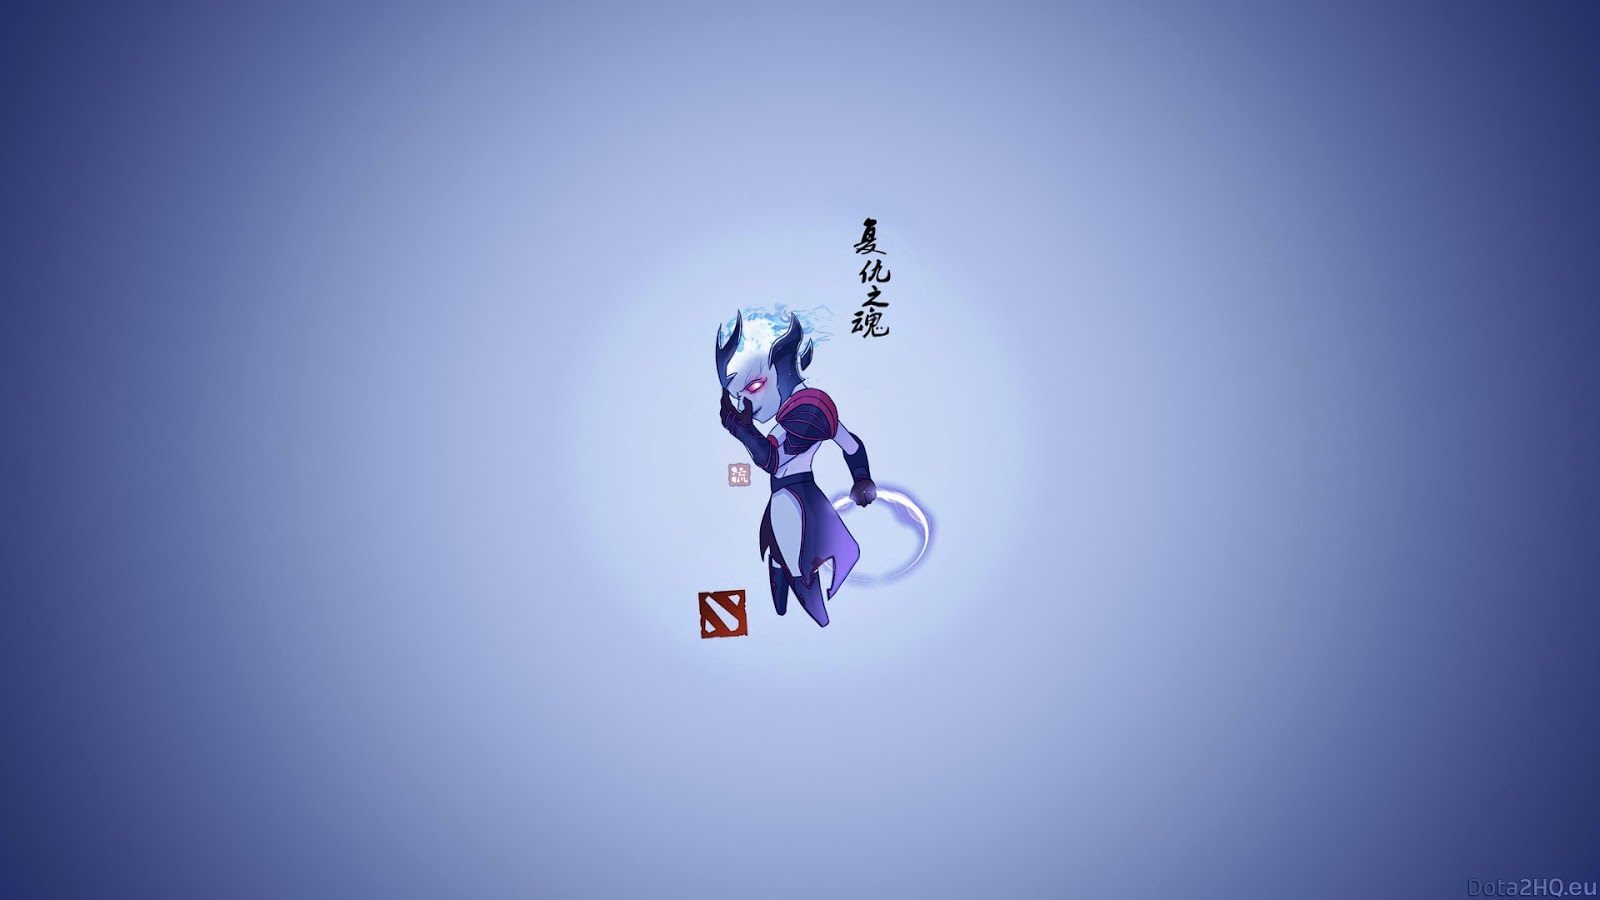 DotA 2 Minimalist Wallpaper full HD for Desktop